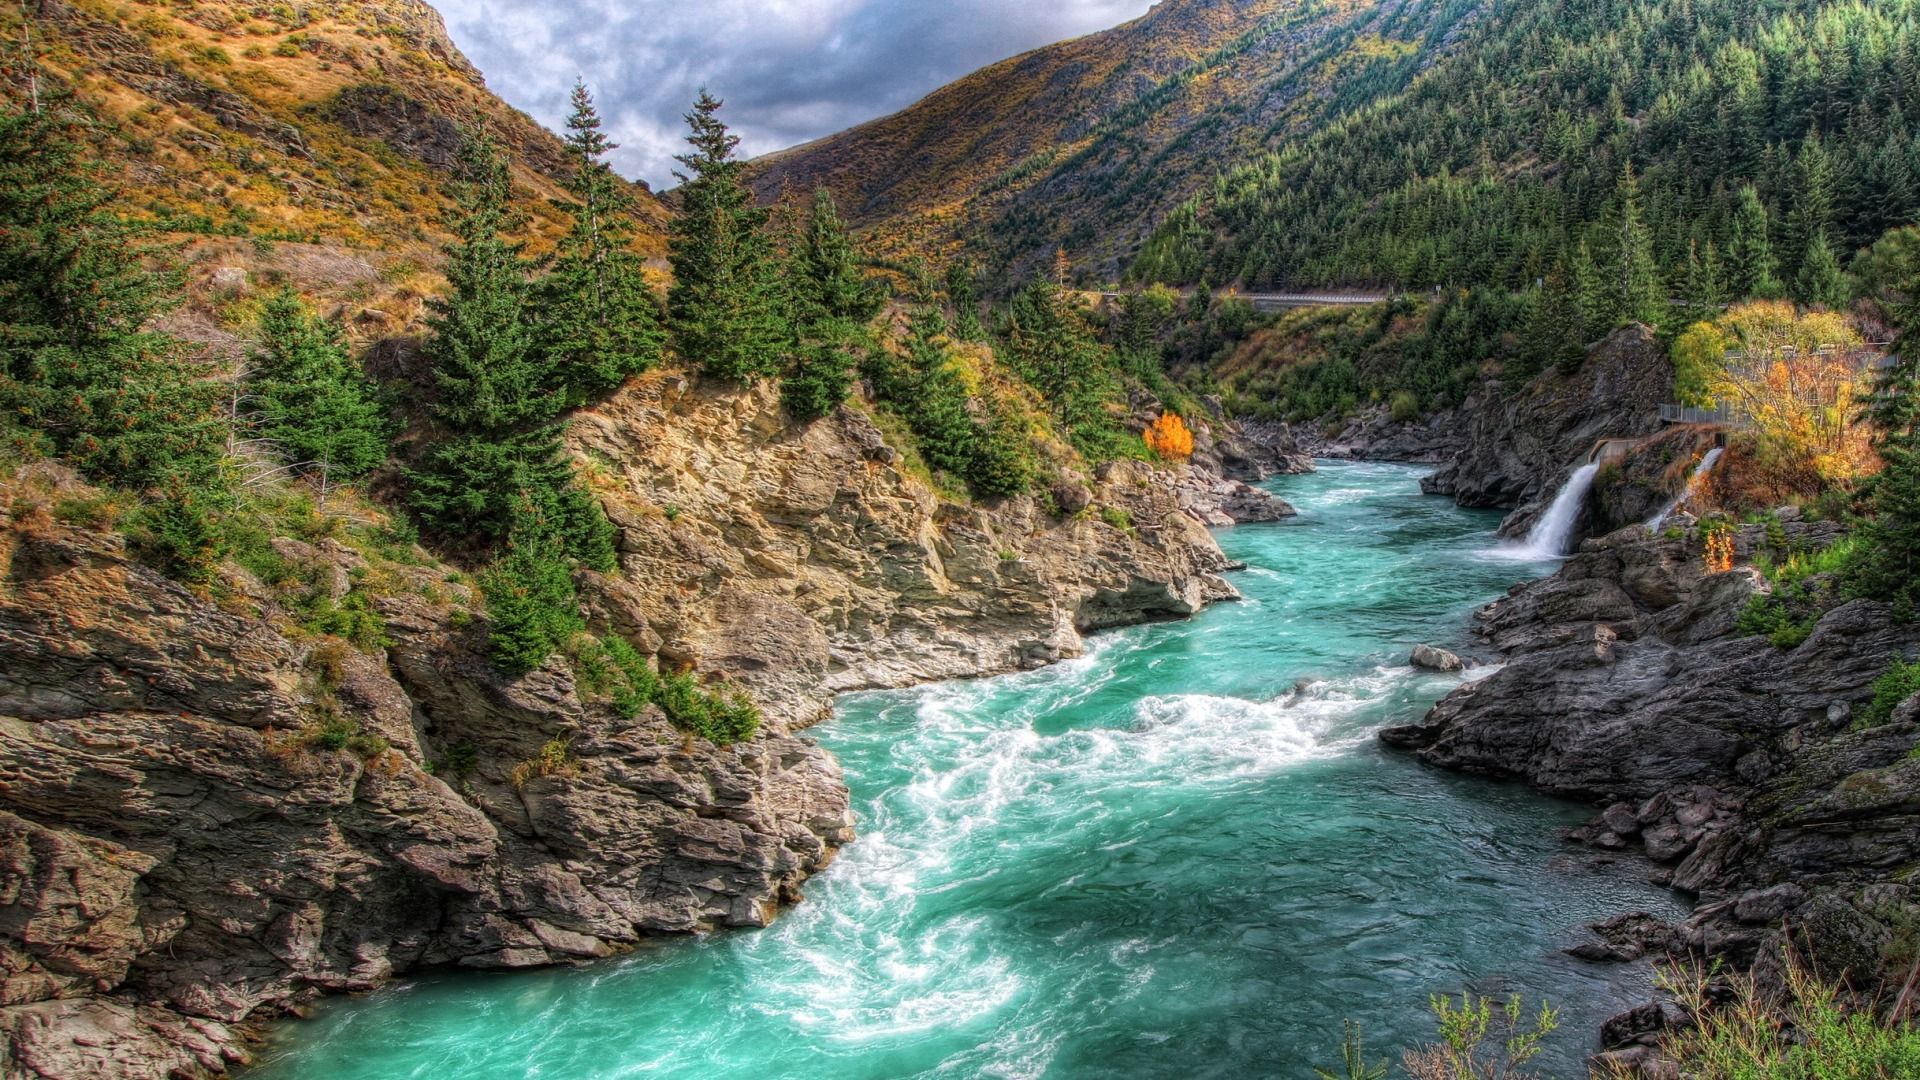 Download Wallpaper Mountains River Stones New Zealand Trees Section Priroda Resolution 1920x1080 In 2020 River Mountain Landscape Mountain River